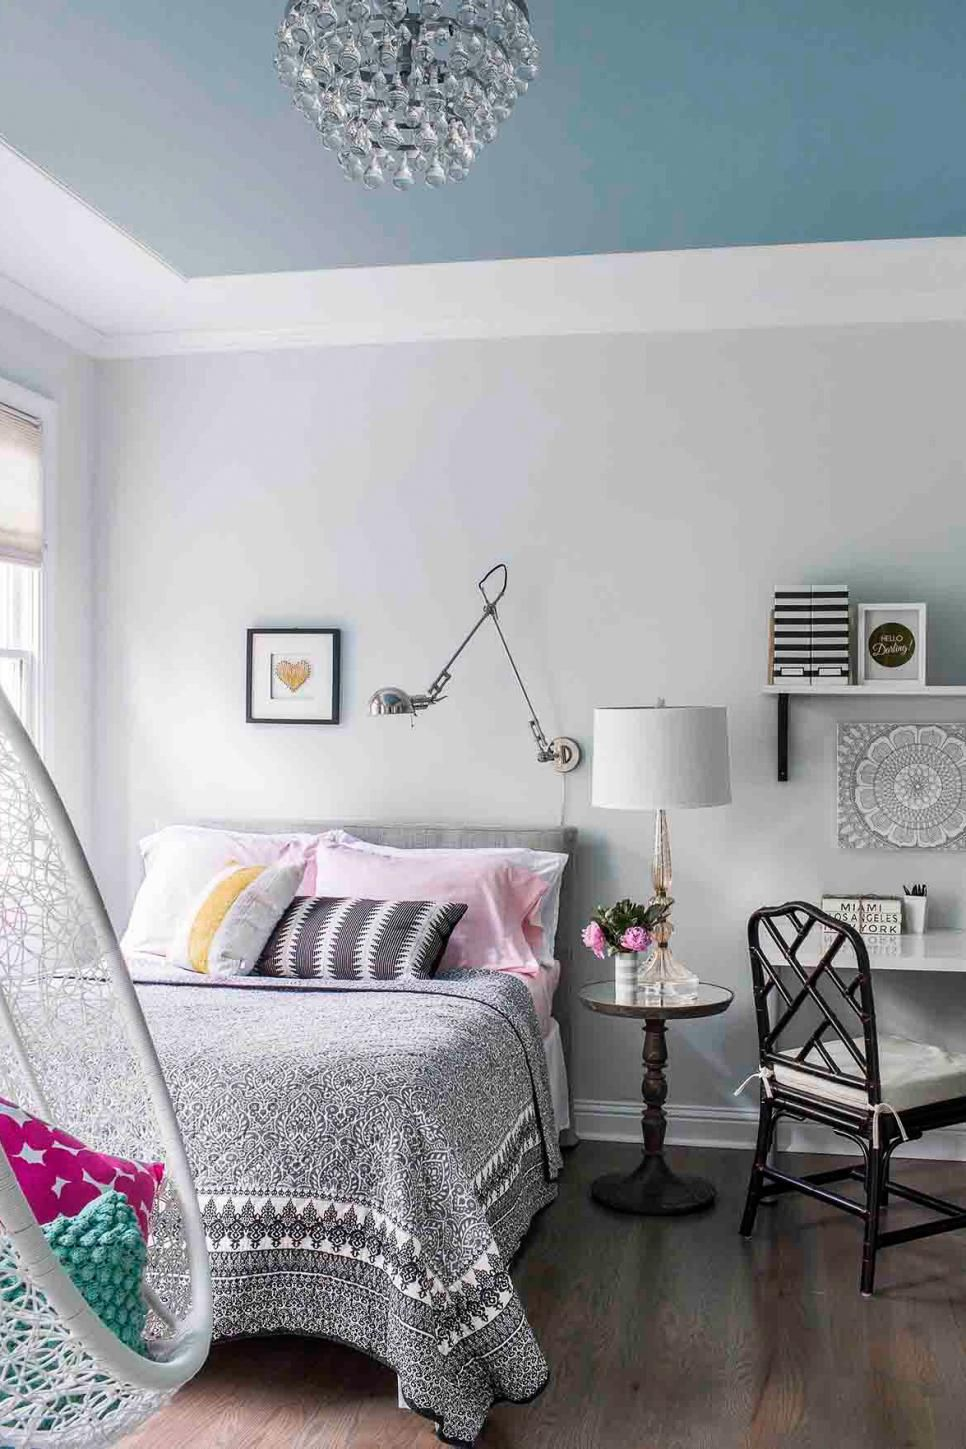 Designers dish on why you should paint your ceiling bedroom ideas